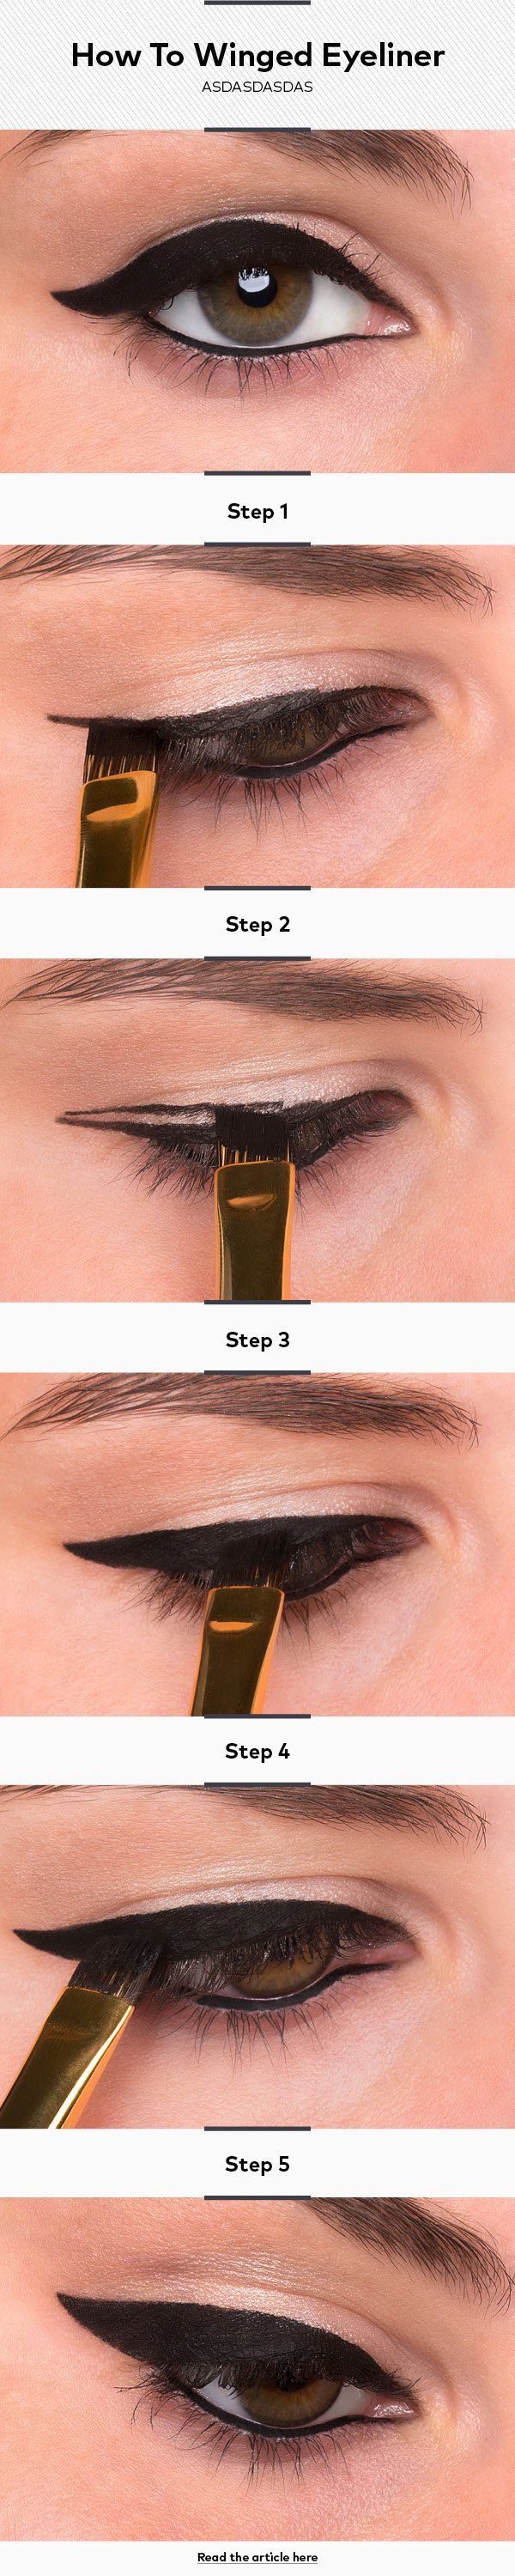 How To Do Winged Eyeliner or Cat-Eye Liner   NEW Real Techniques brushes makeup -$10 http://youtu.be/tl_2Ejs1_9I   #realtechniques #realtechniquesbrushes #makeup #makeupbrushes #makeupartist